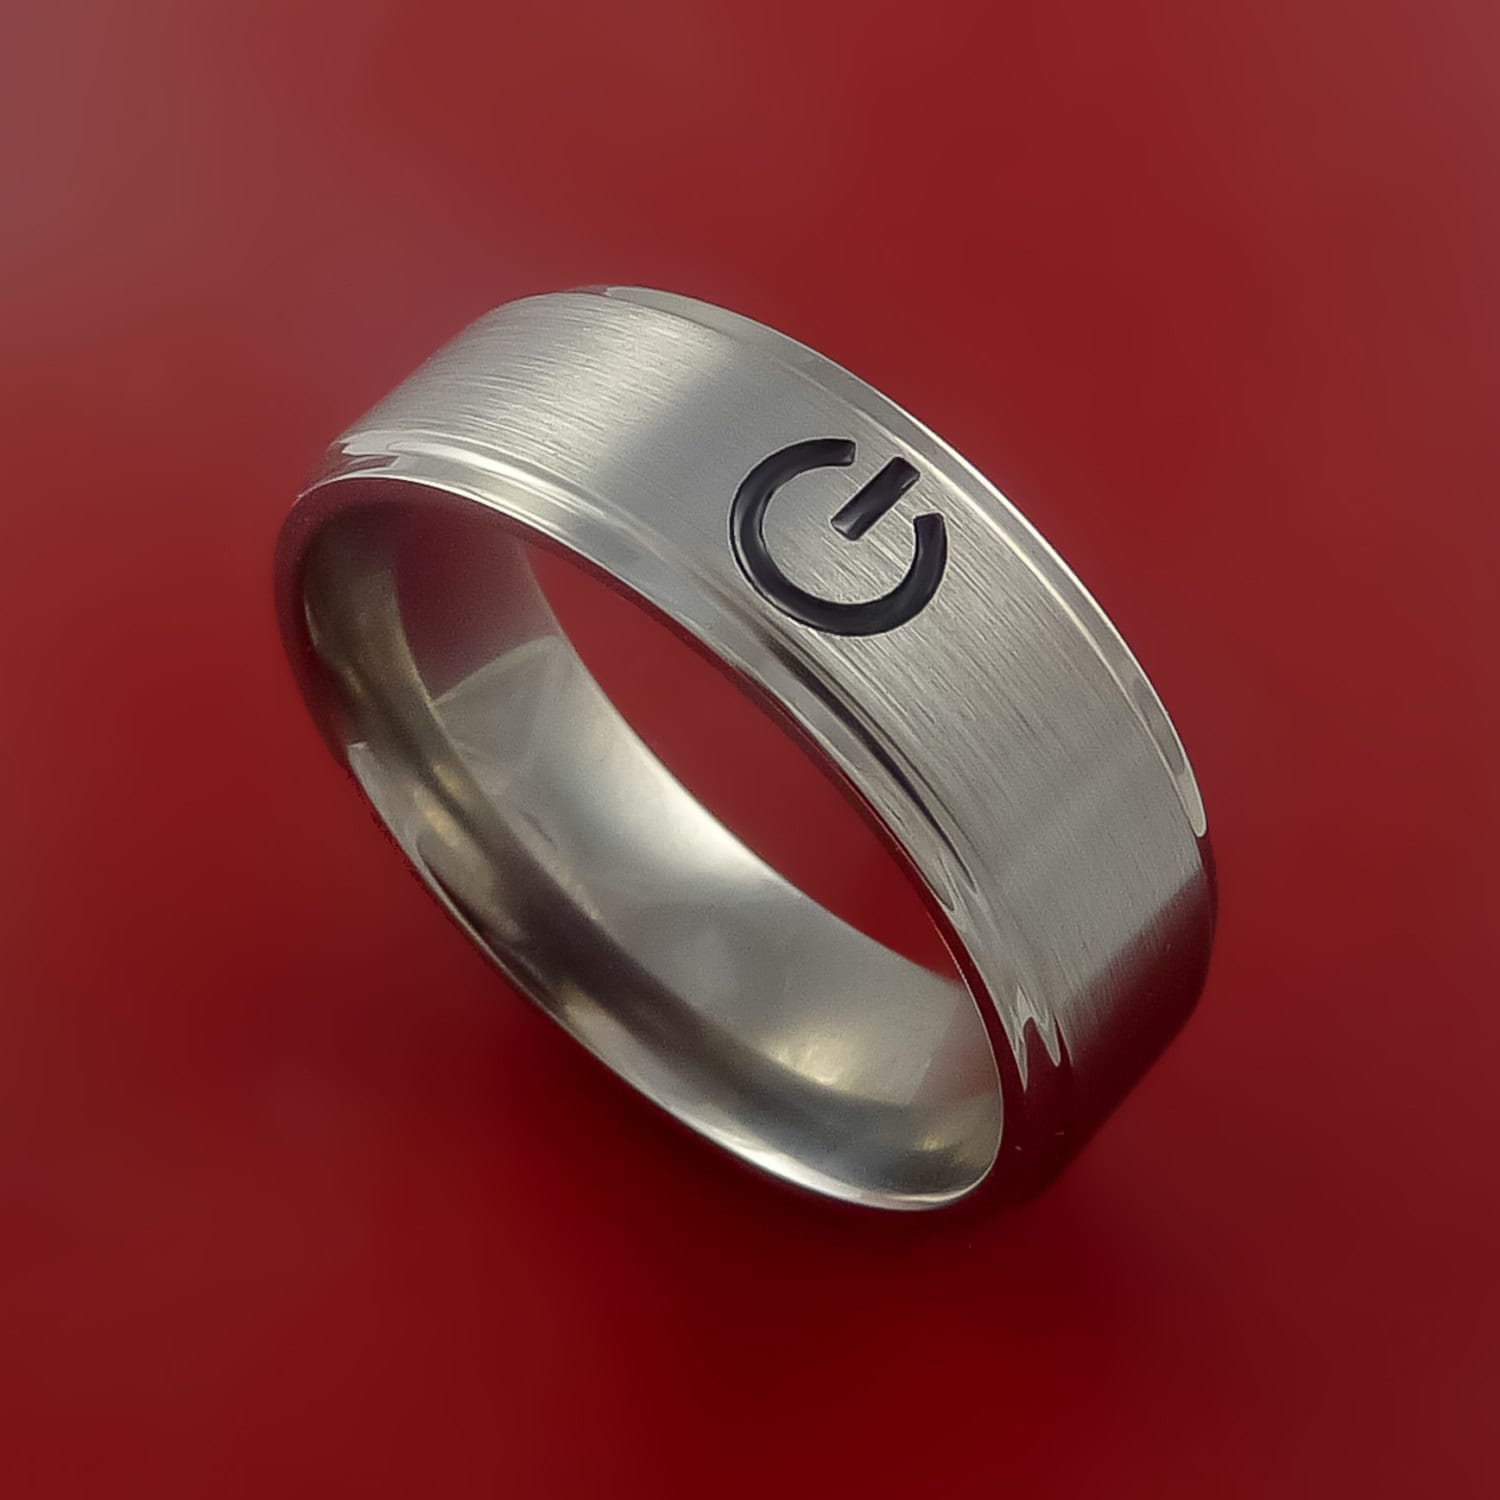 source tastic rings for life guff nerd wedding most linked media the geeky engagement of